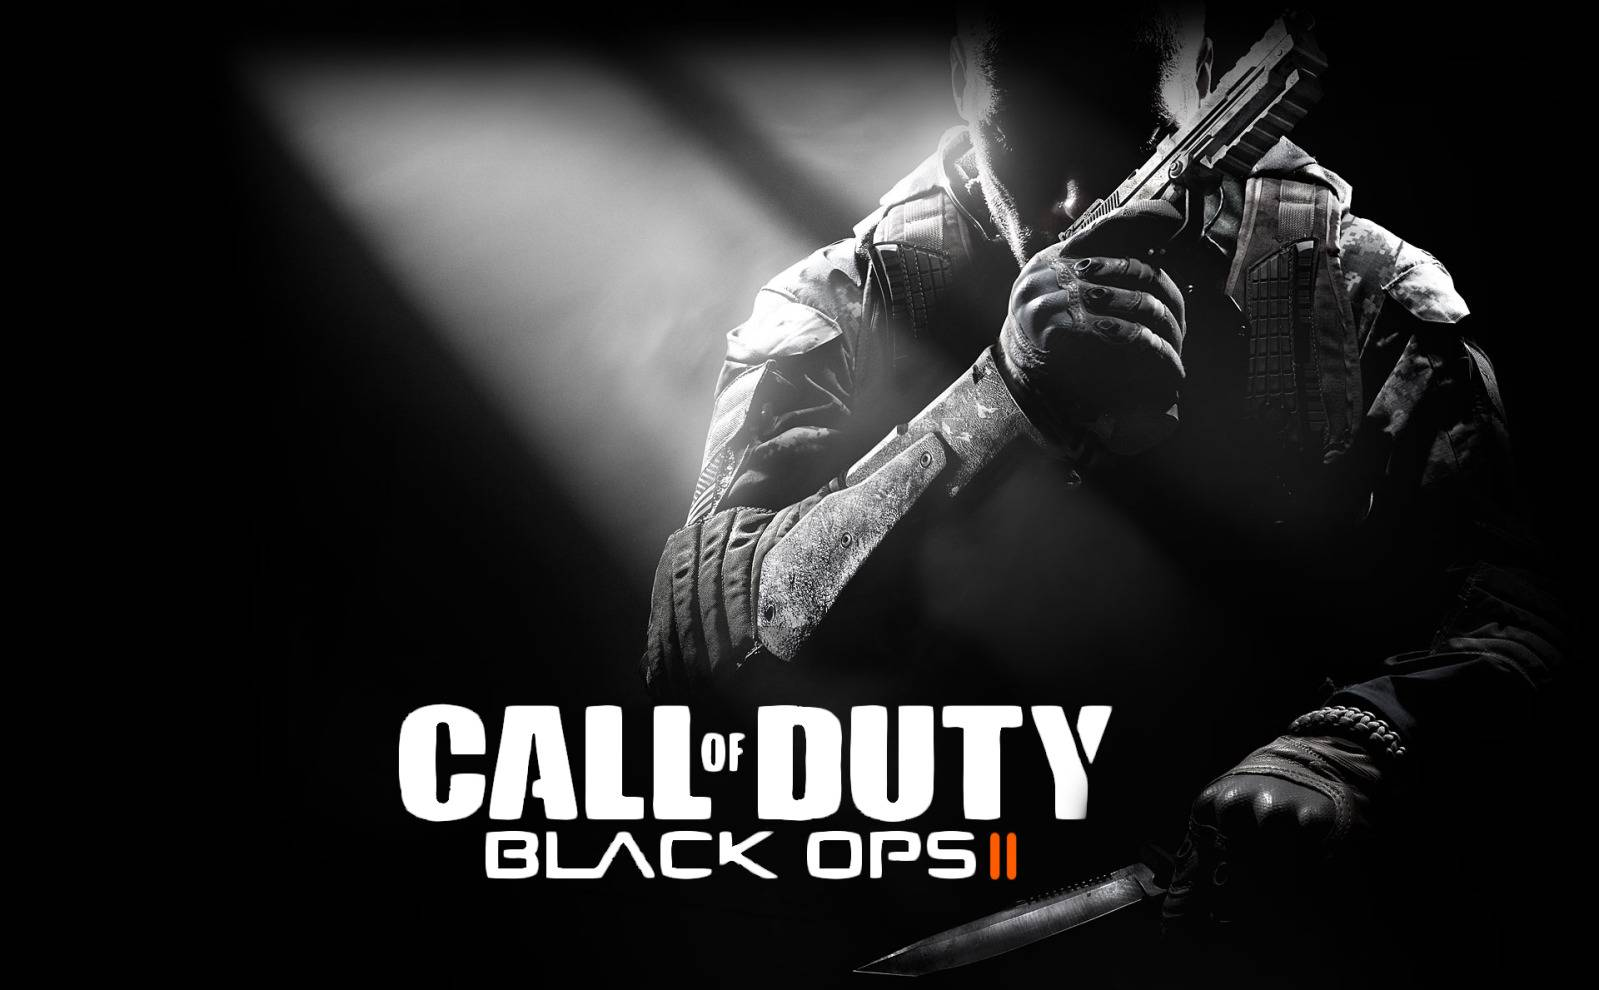 Free Download Call Of Duty Black Ops 2 Wallpapers In Hd